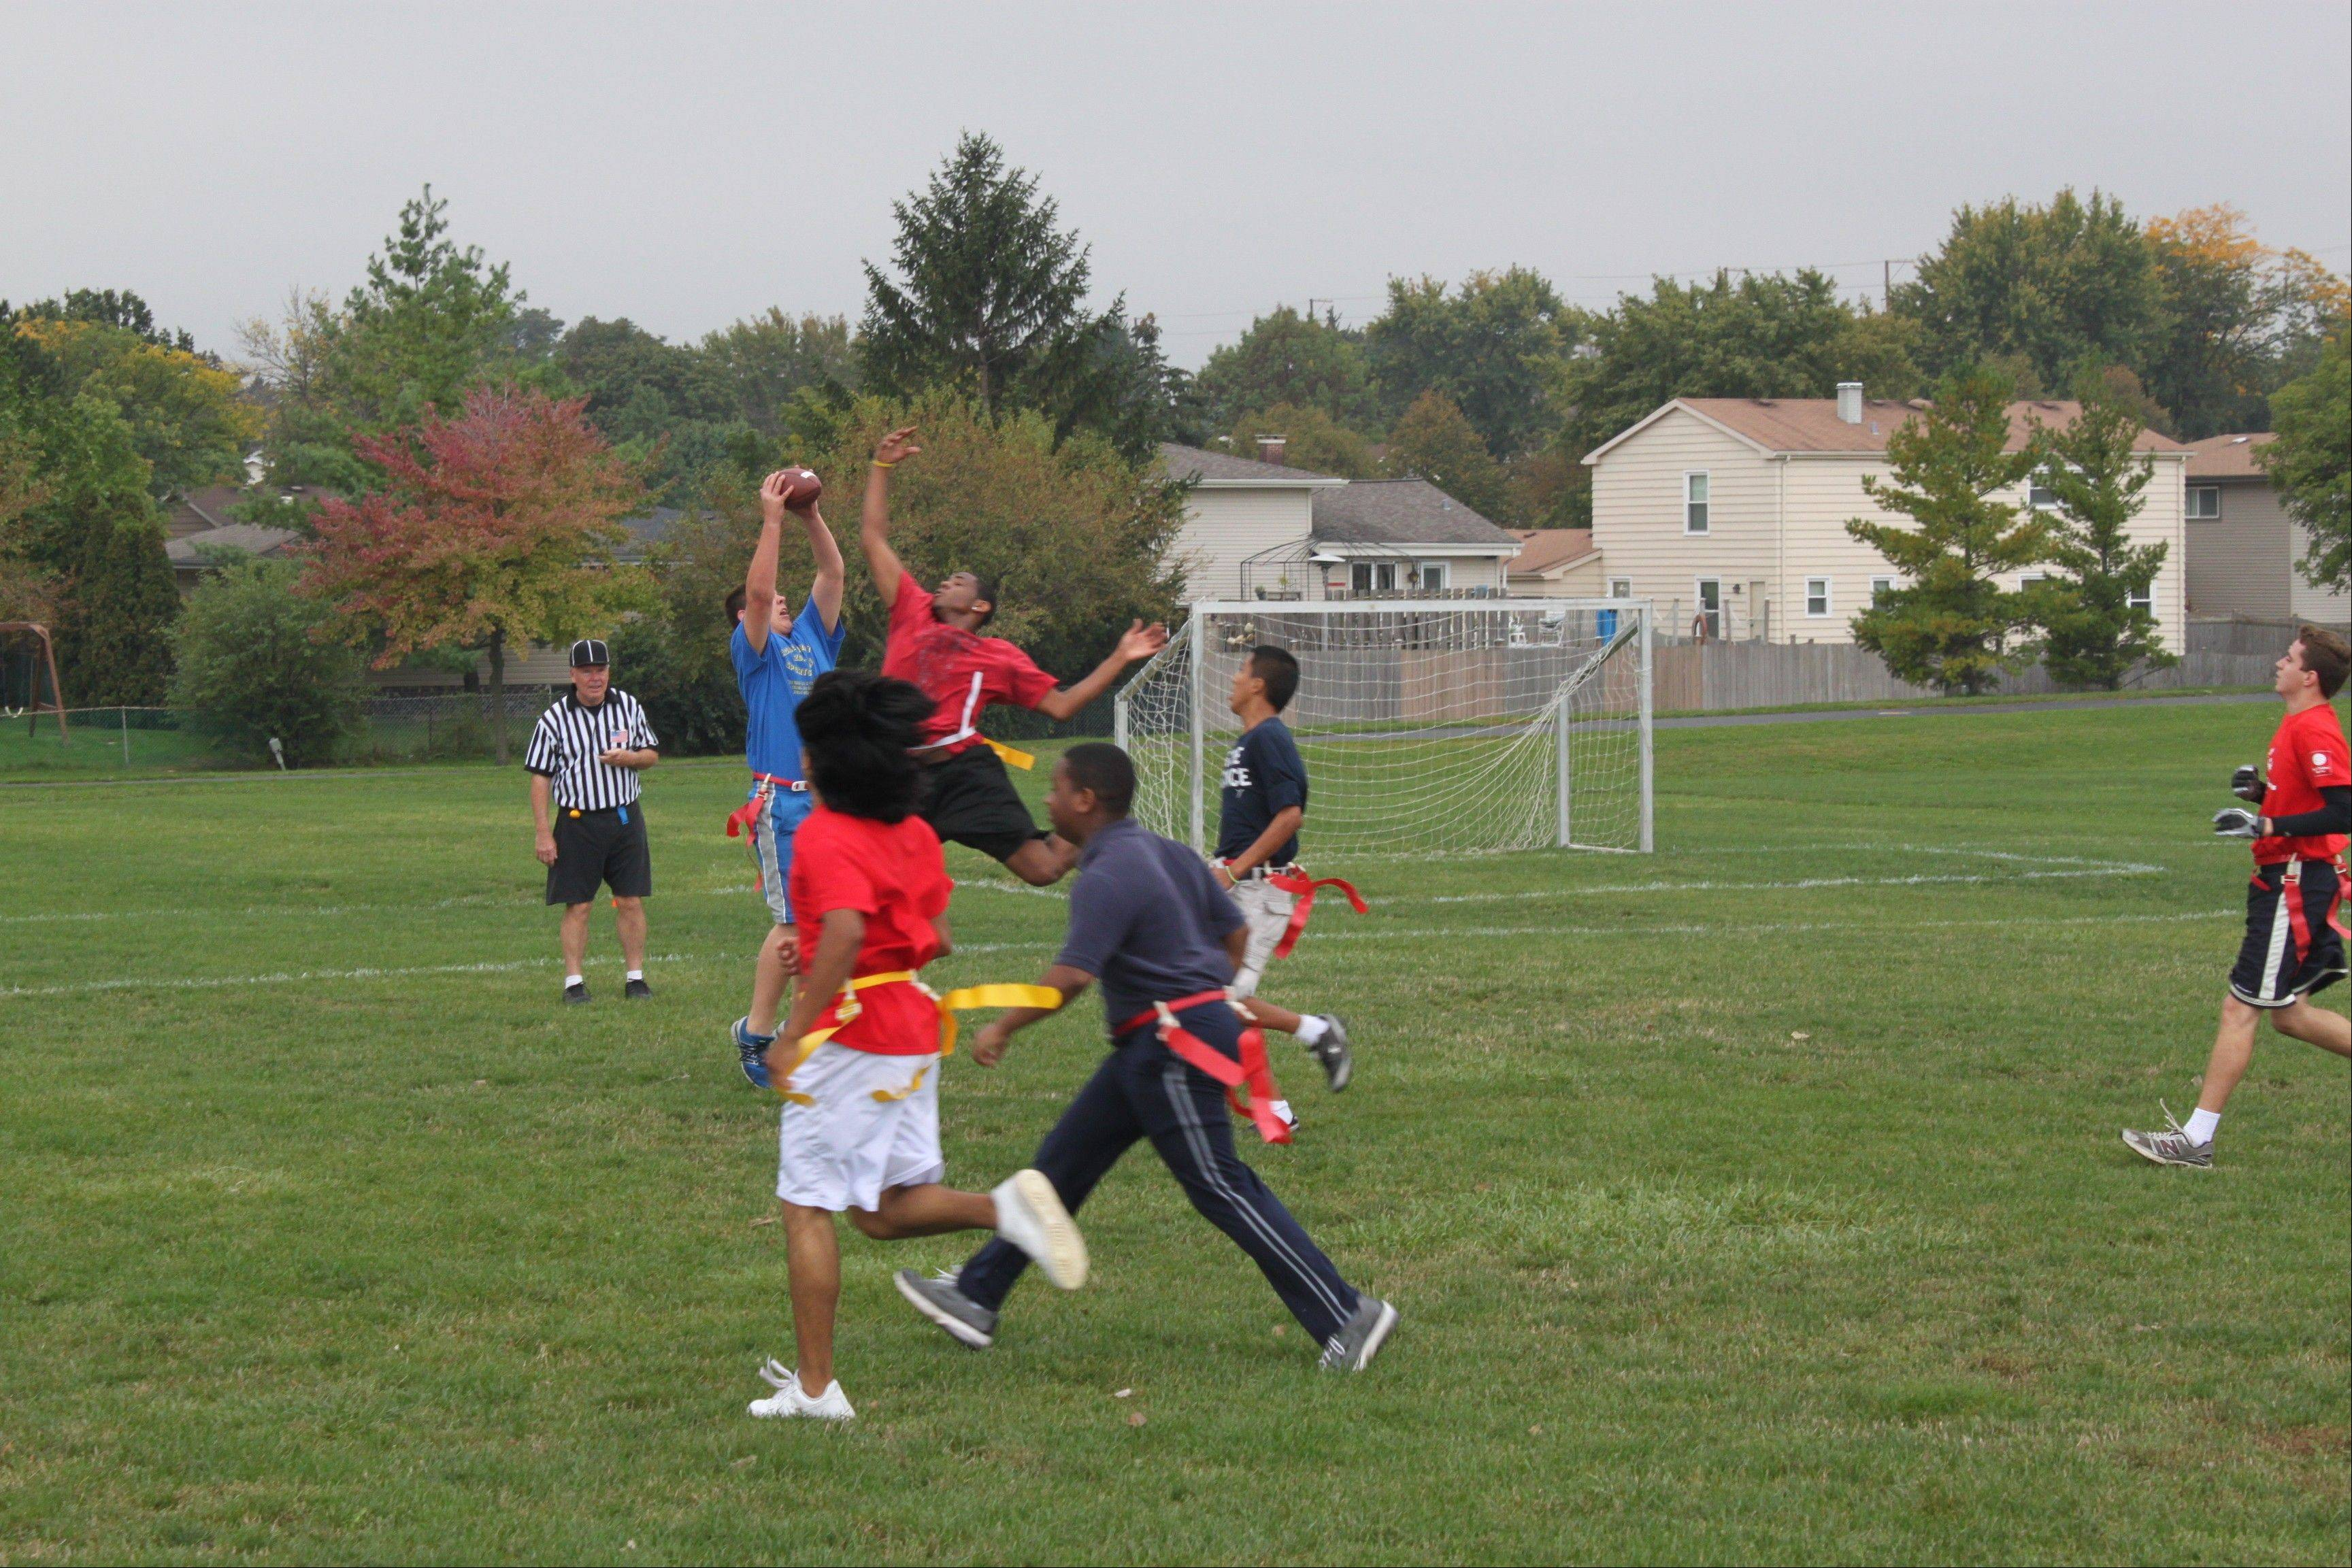 Students from alternative schools relish the opportunity to play sports in the PRO League on Friday afternoons. Organizers say the program helps develop self-esteem, teamwork and sportsmanship.